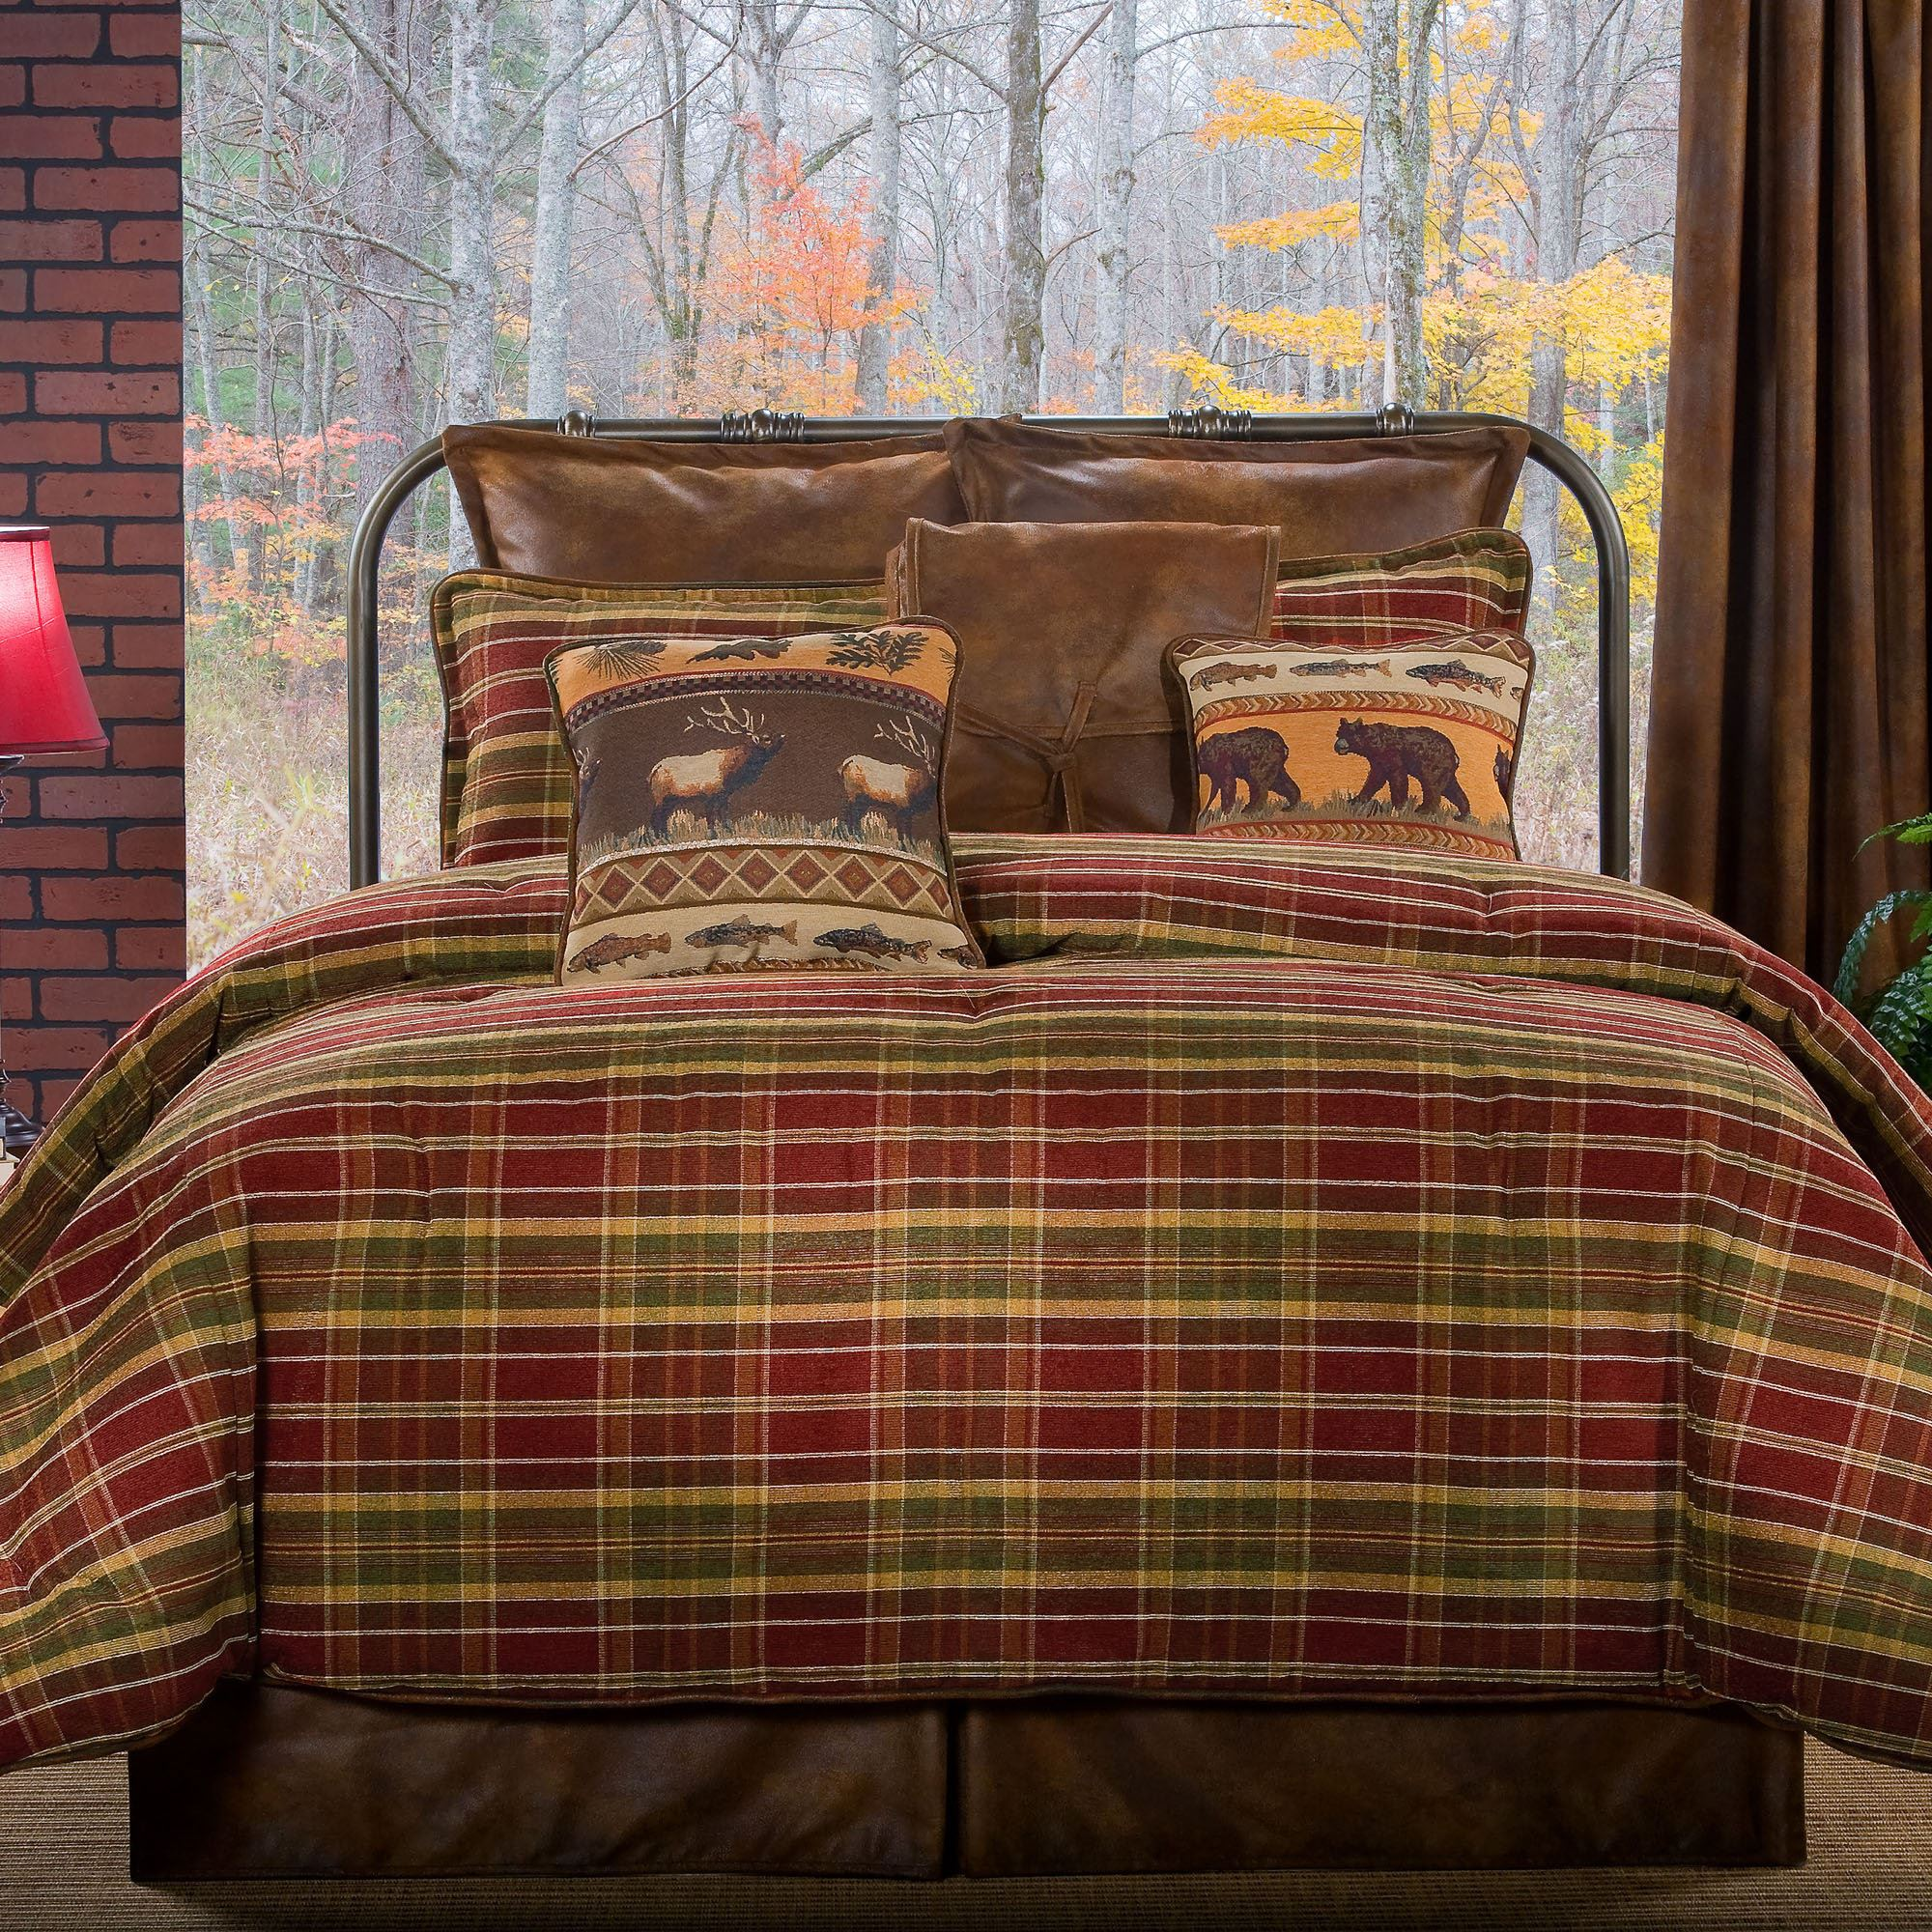 comforter comforters ecrins sets color astonishing dark lodge rustic models in